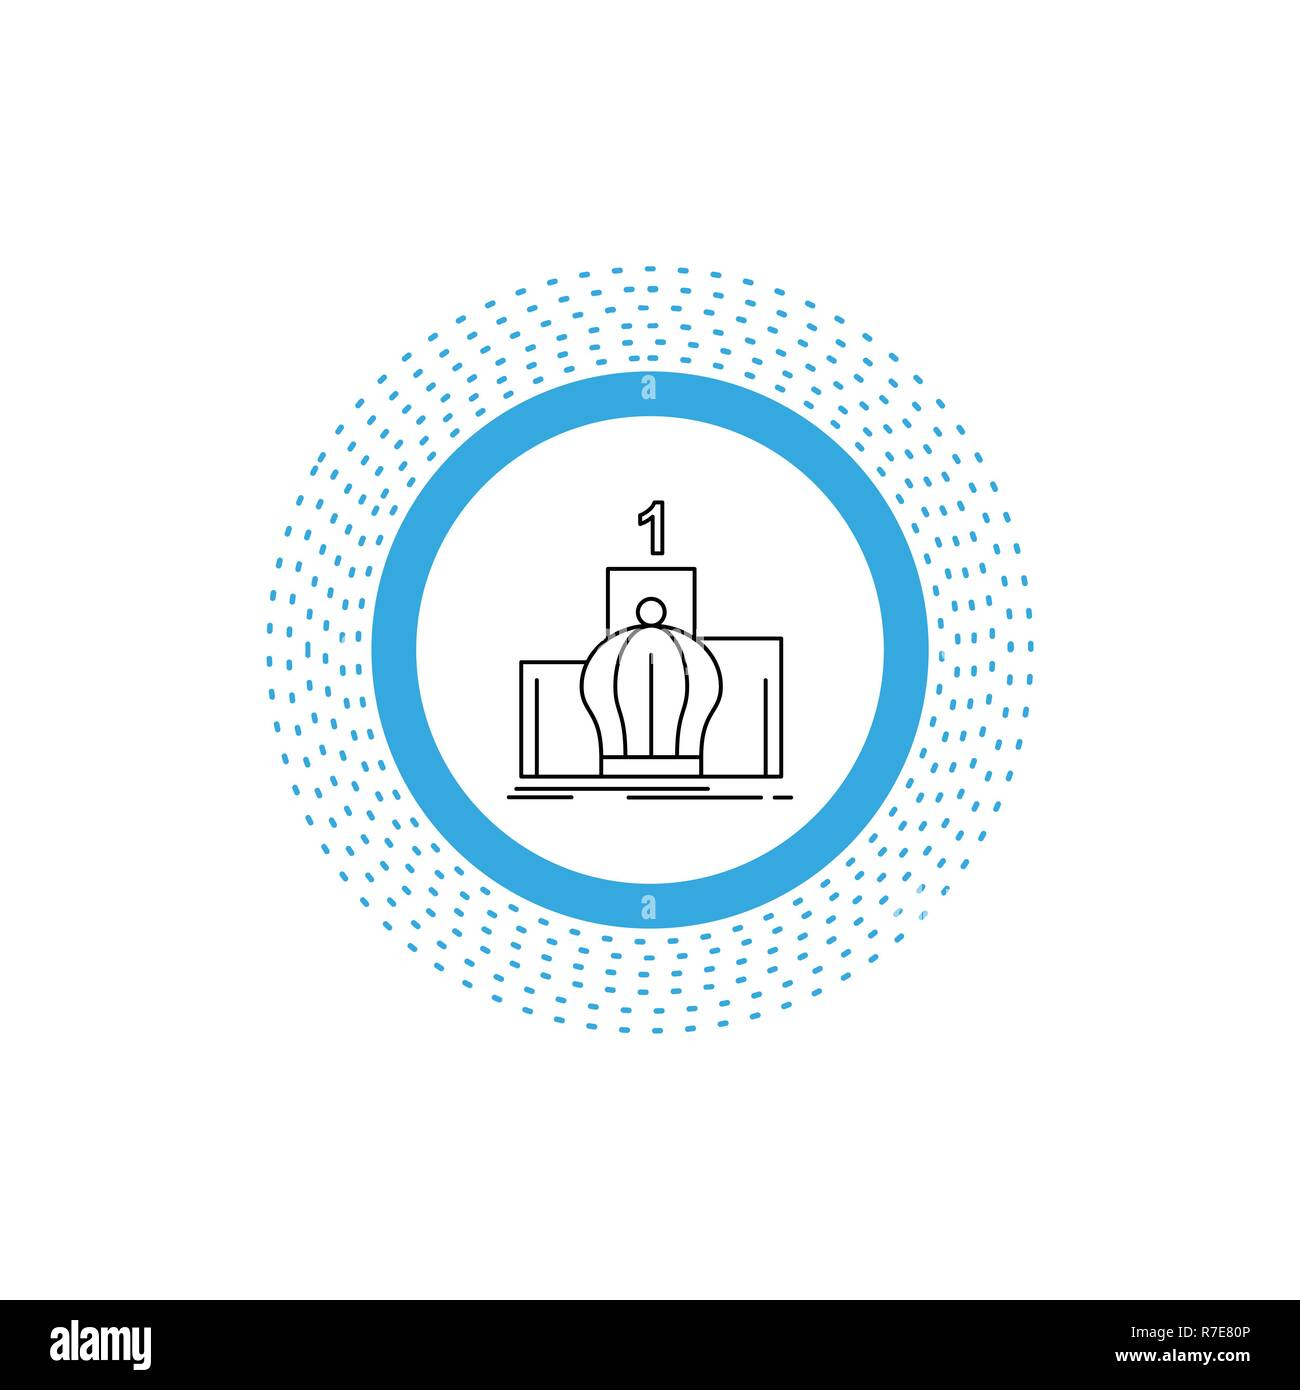 Crown, king, leadership, monarchy, royal Line Icon. Vector isolated illustration - Stock Vector